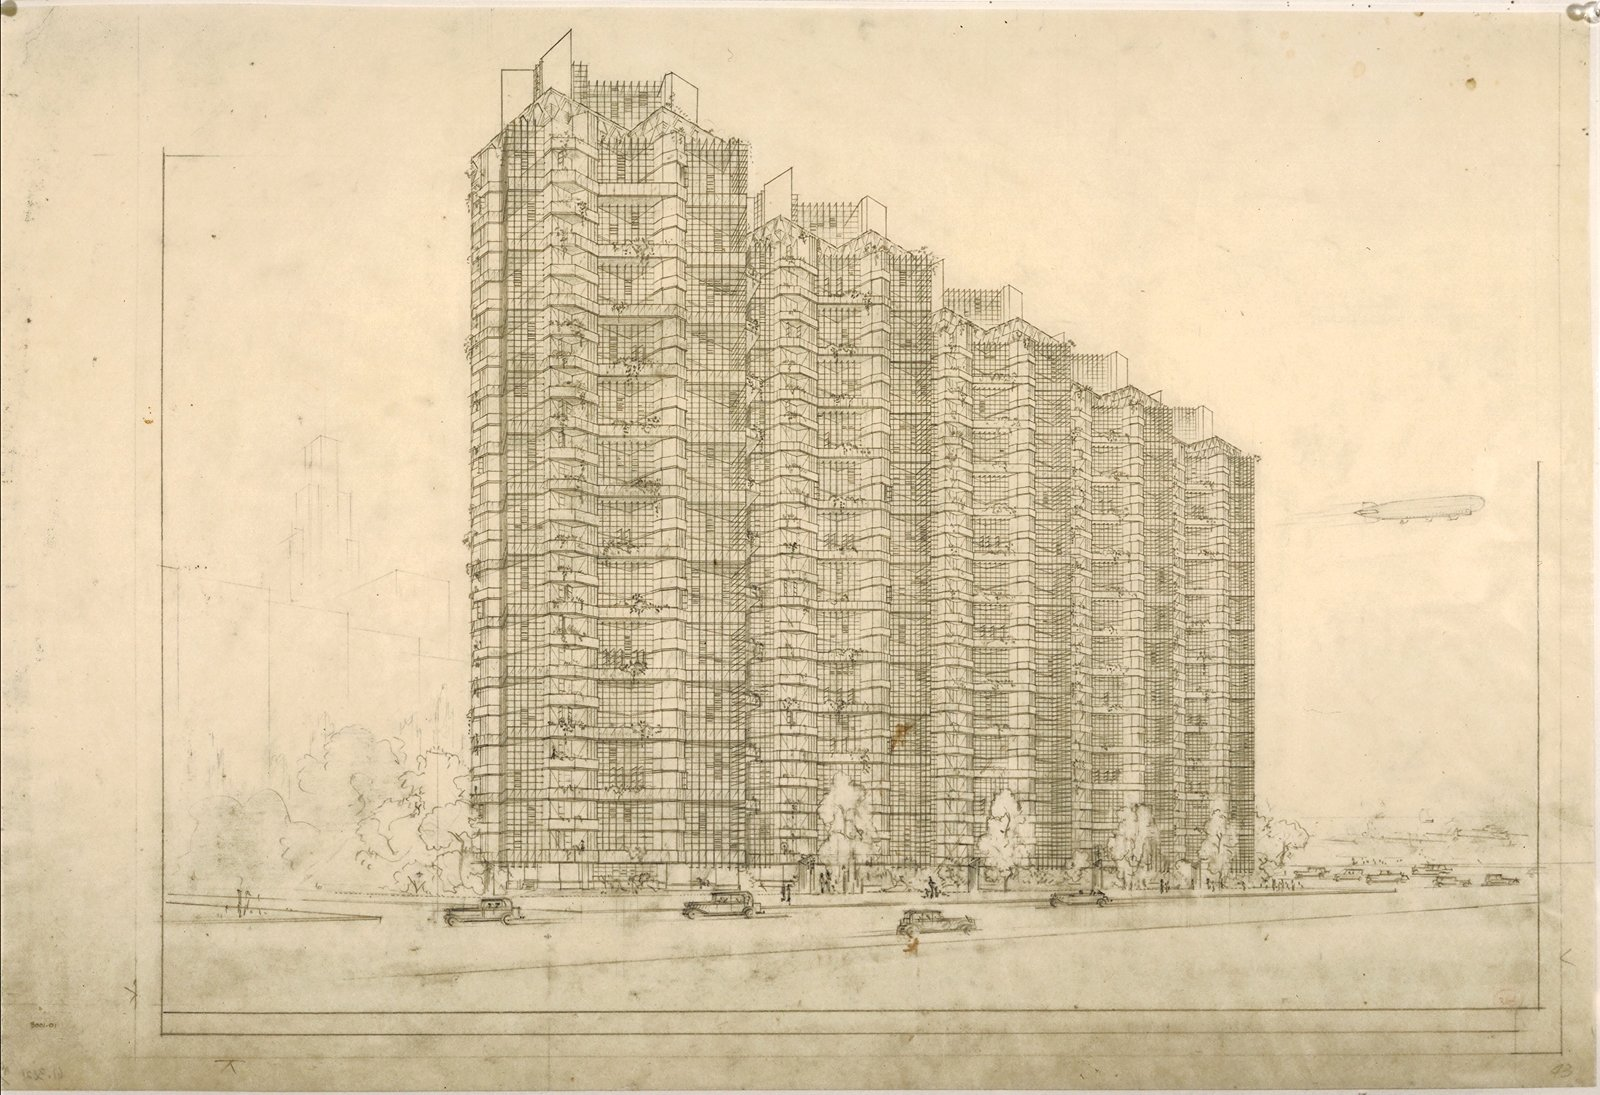 Although the Price Tower is Wright's only realized skyscraper, the rendering of the Grouped Towers in Chicago portrays similar themes of lightness and balance. The Frank Lloyd Wright Foundation Archives (The Museum of Modern Art | Avery Architectural & Fine Arts Library, Columbia University, New York).  Modern Master: Frank Lloyd Wright by Matthew Keeshin from The Museum of Modern Art: Frank Lloyd Wright Exhibition